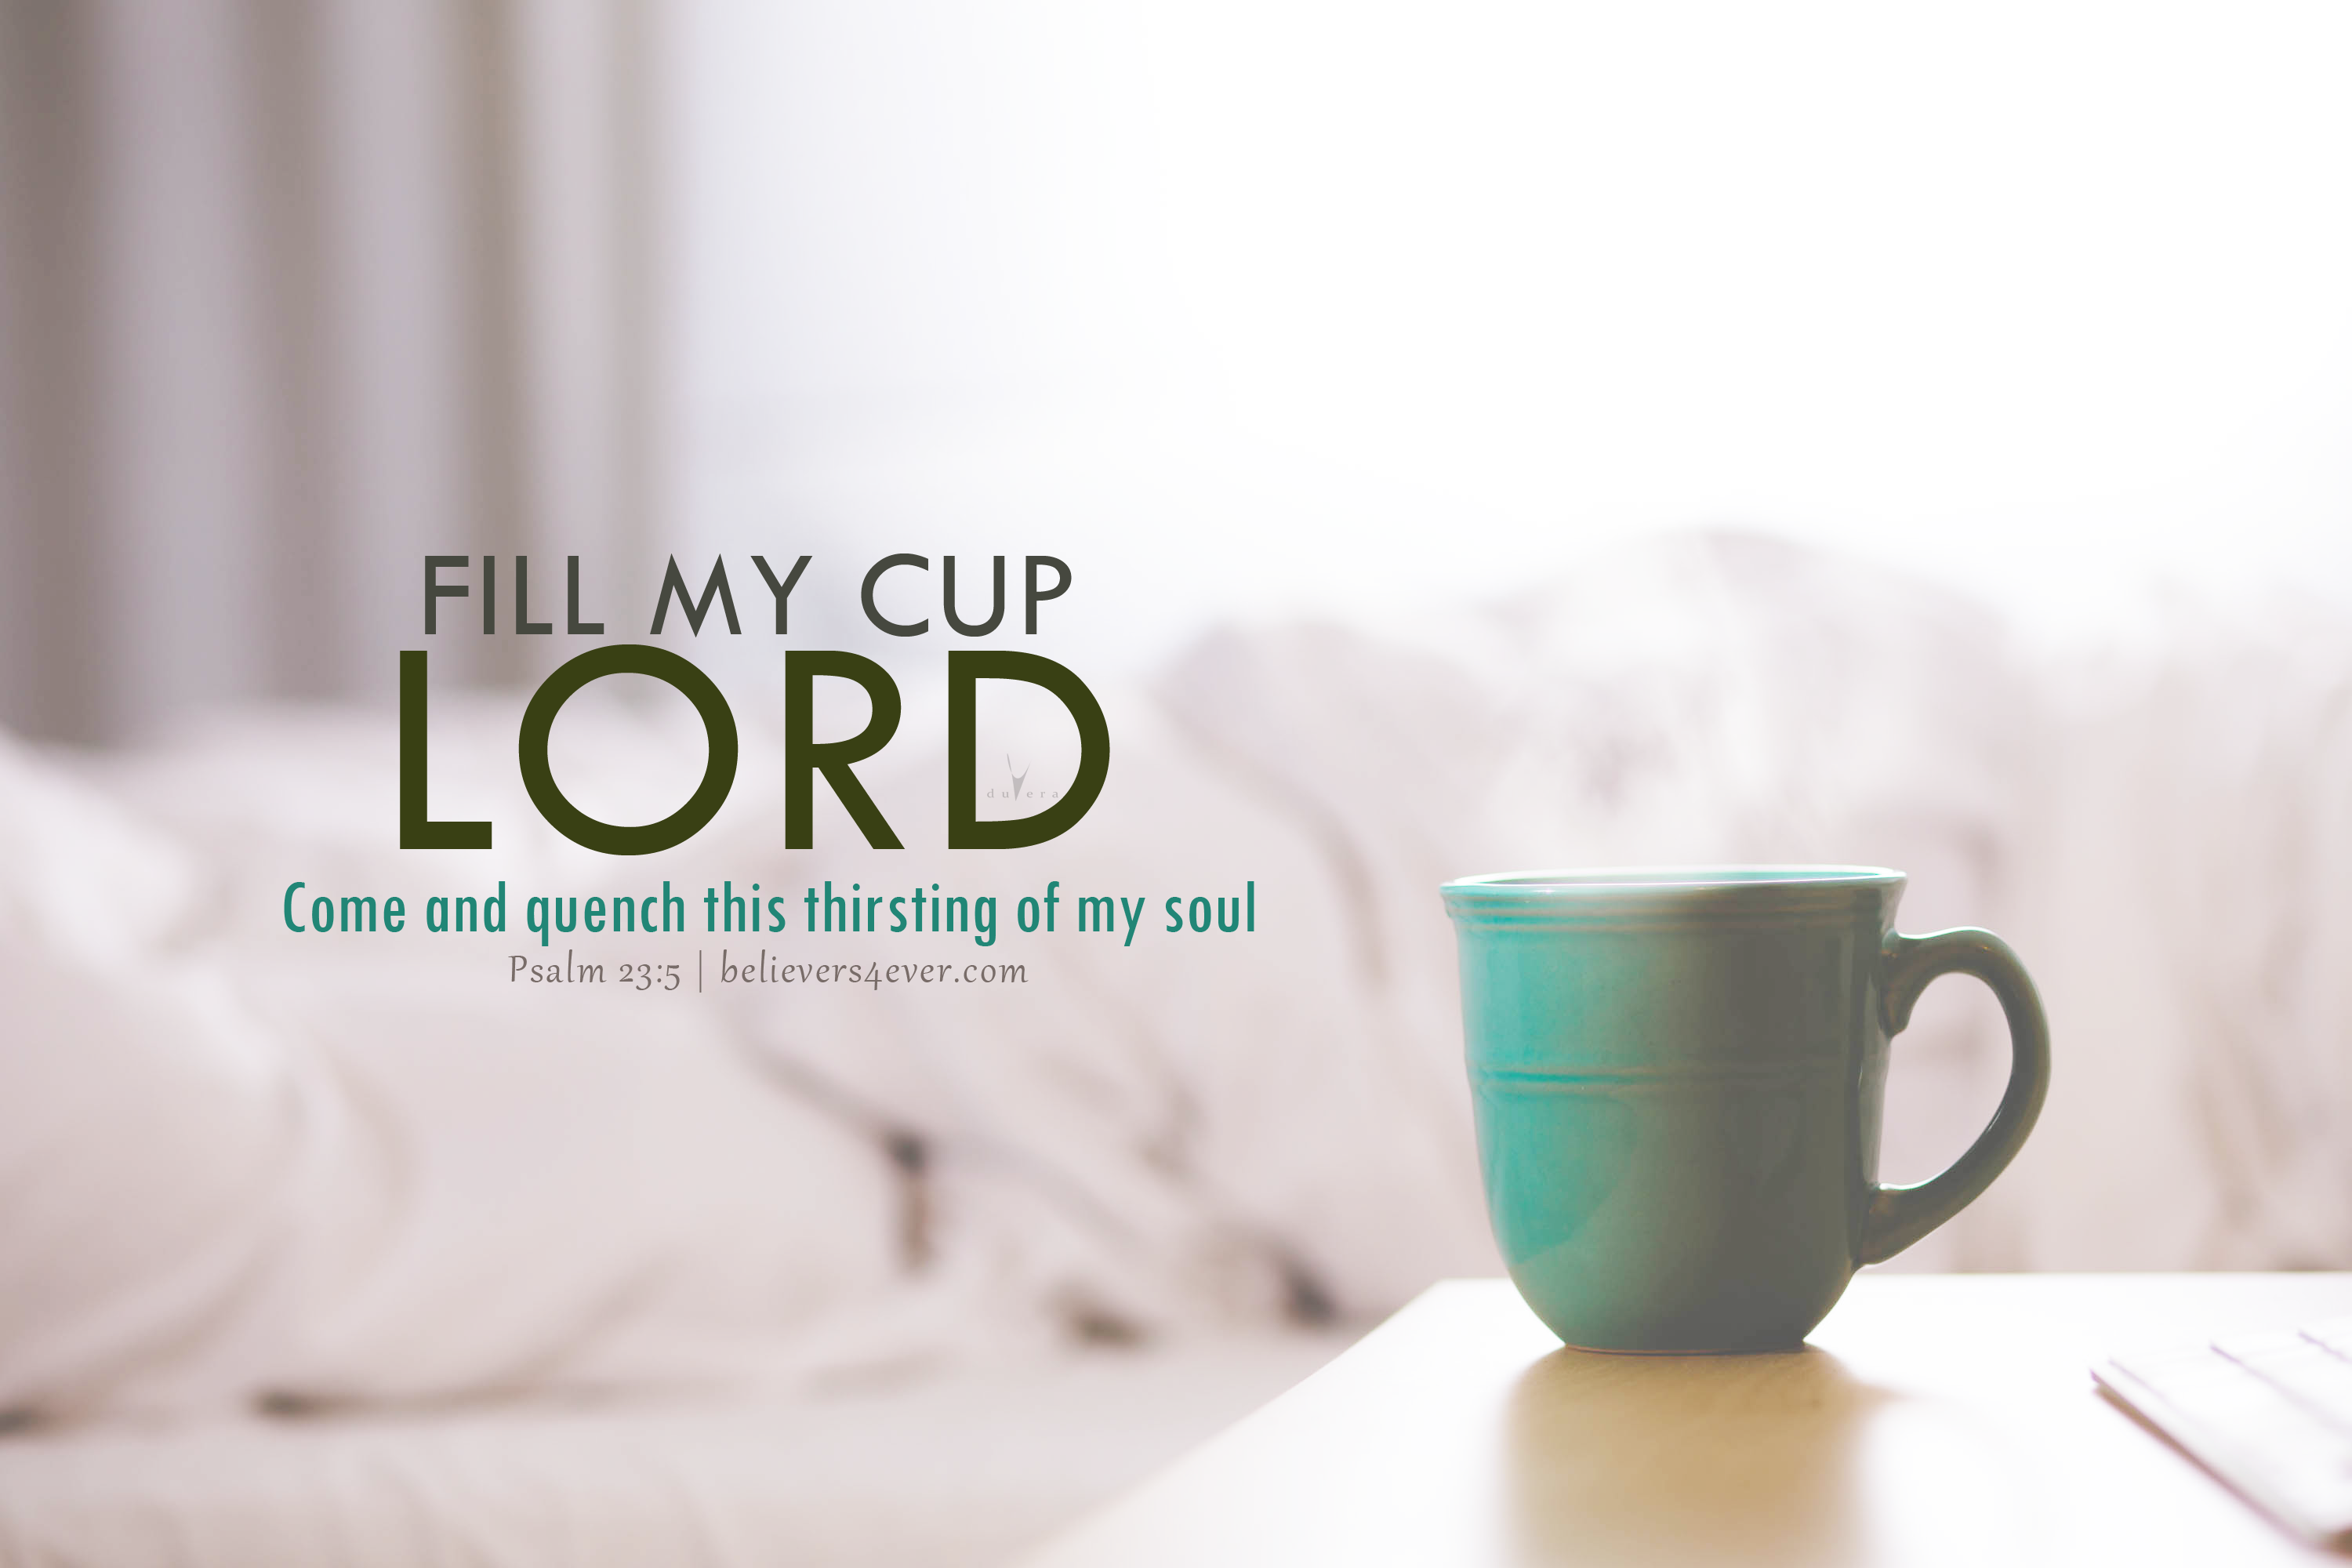 Fill my cup Lord Word of God Fill my cup lord Christian 3000x2000